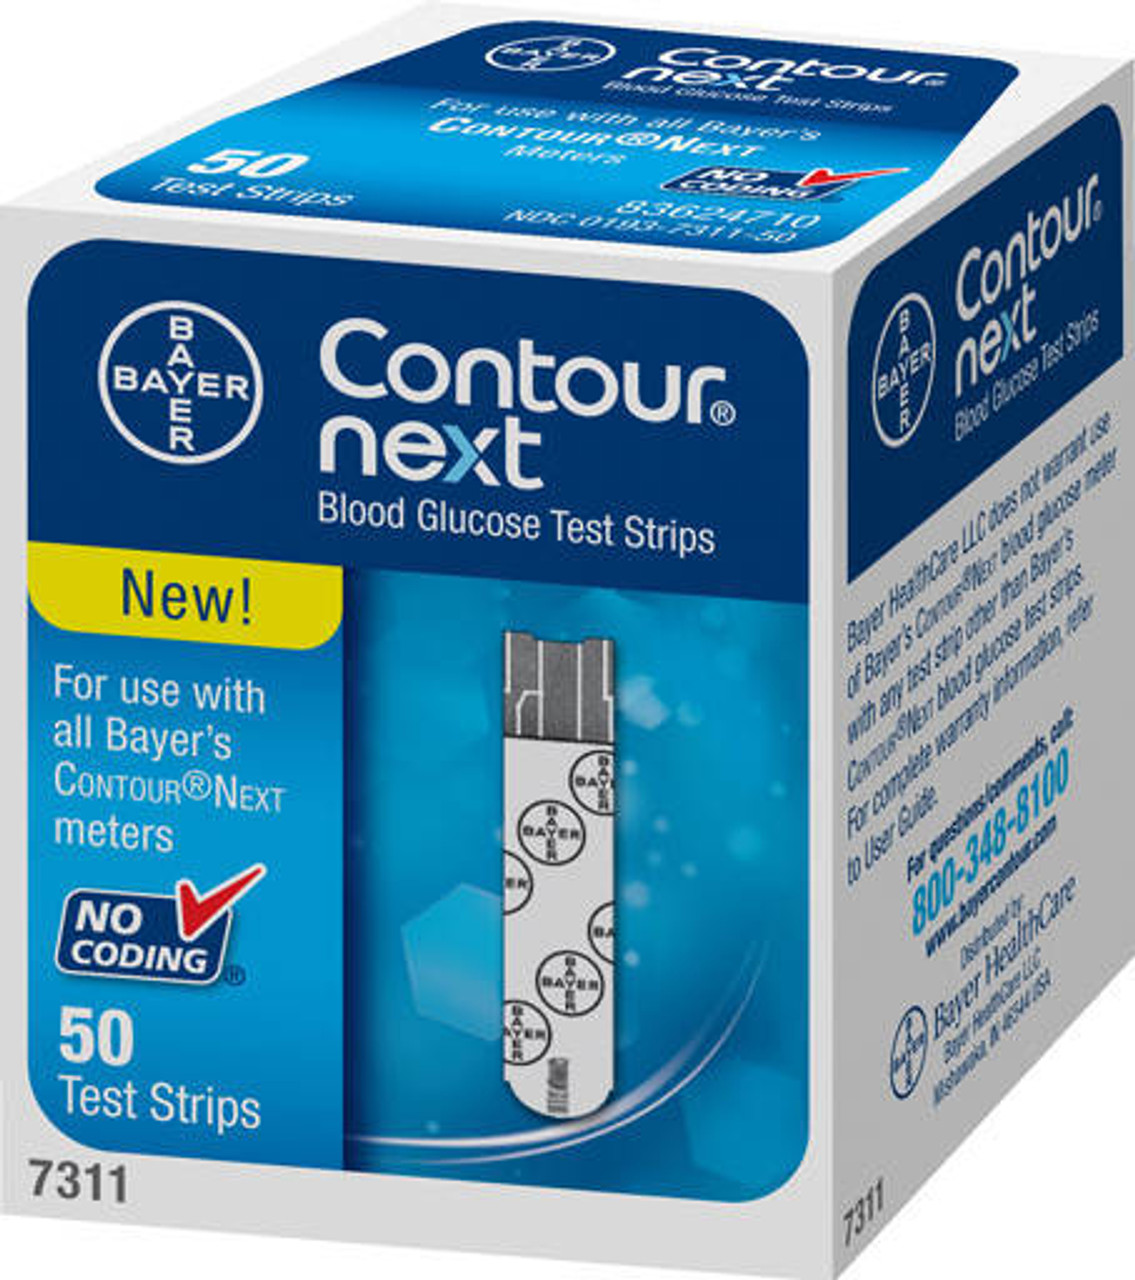 Contour® NEXT Test Strips by Bayer